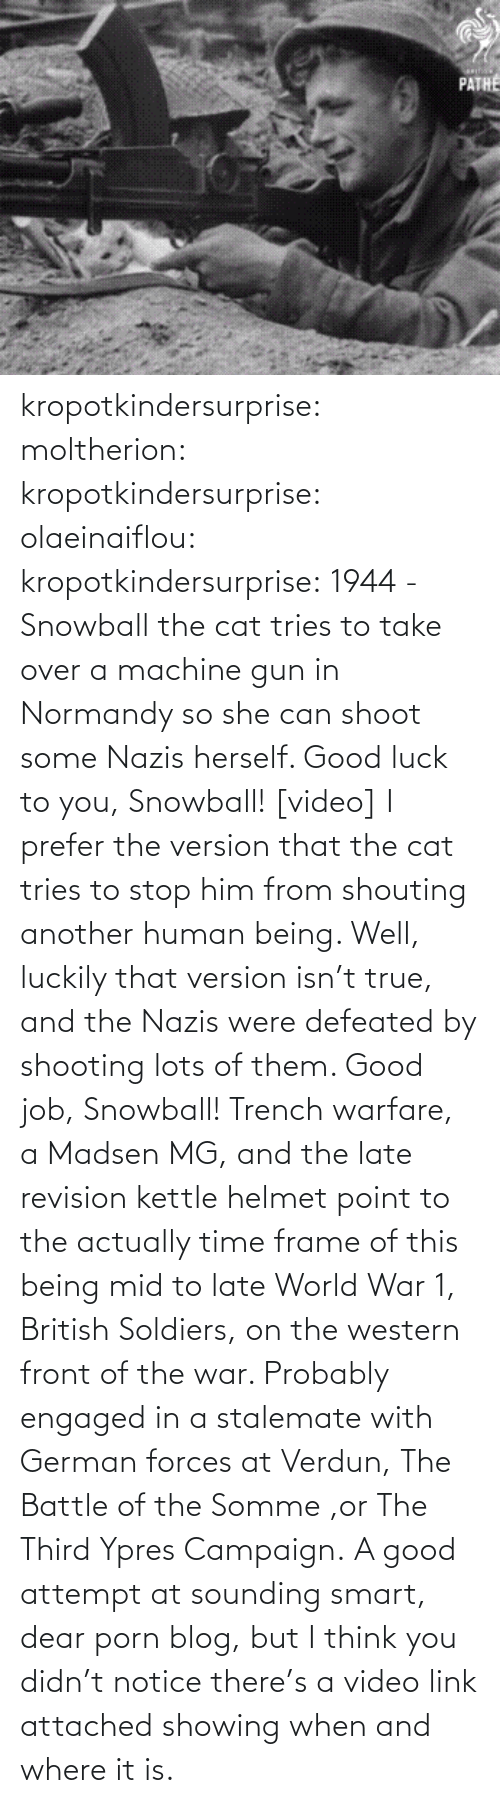 Tries: PATHE kropotkindersurprise: moltherion:  kropotkindersurprise:  olaeinaiflou:  kropotkindersurprise: 1944 - Snowball the cat tries to take over a machine gun in Normandy so she can shoot some Nazis herself. Good luck to you, Snowball! [video]  I prefer the version that the cat tries to stop him from shouting another human being.   Well, luckily that version isn't true, and the Nazis were defeated by shooting lots of them. Good job, Snowball!   Trench warfare, a Madsen MG, and the late revision kettle helmet point to the actually time frame of this being mid to late World War 1, British Soldiers, on the western front of the war. Probably engaged in a stalemate with German forces at Verdun, The Battle of the Somme ,or The Third Ypres Campaign.  A good attempt at sounding smart, dear porn blog, but I think you didn't notice there's a video link attached showing when and where it is.